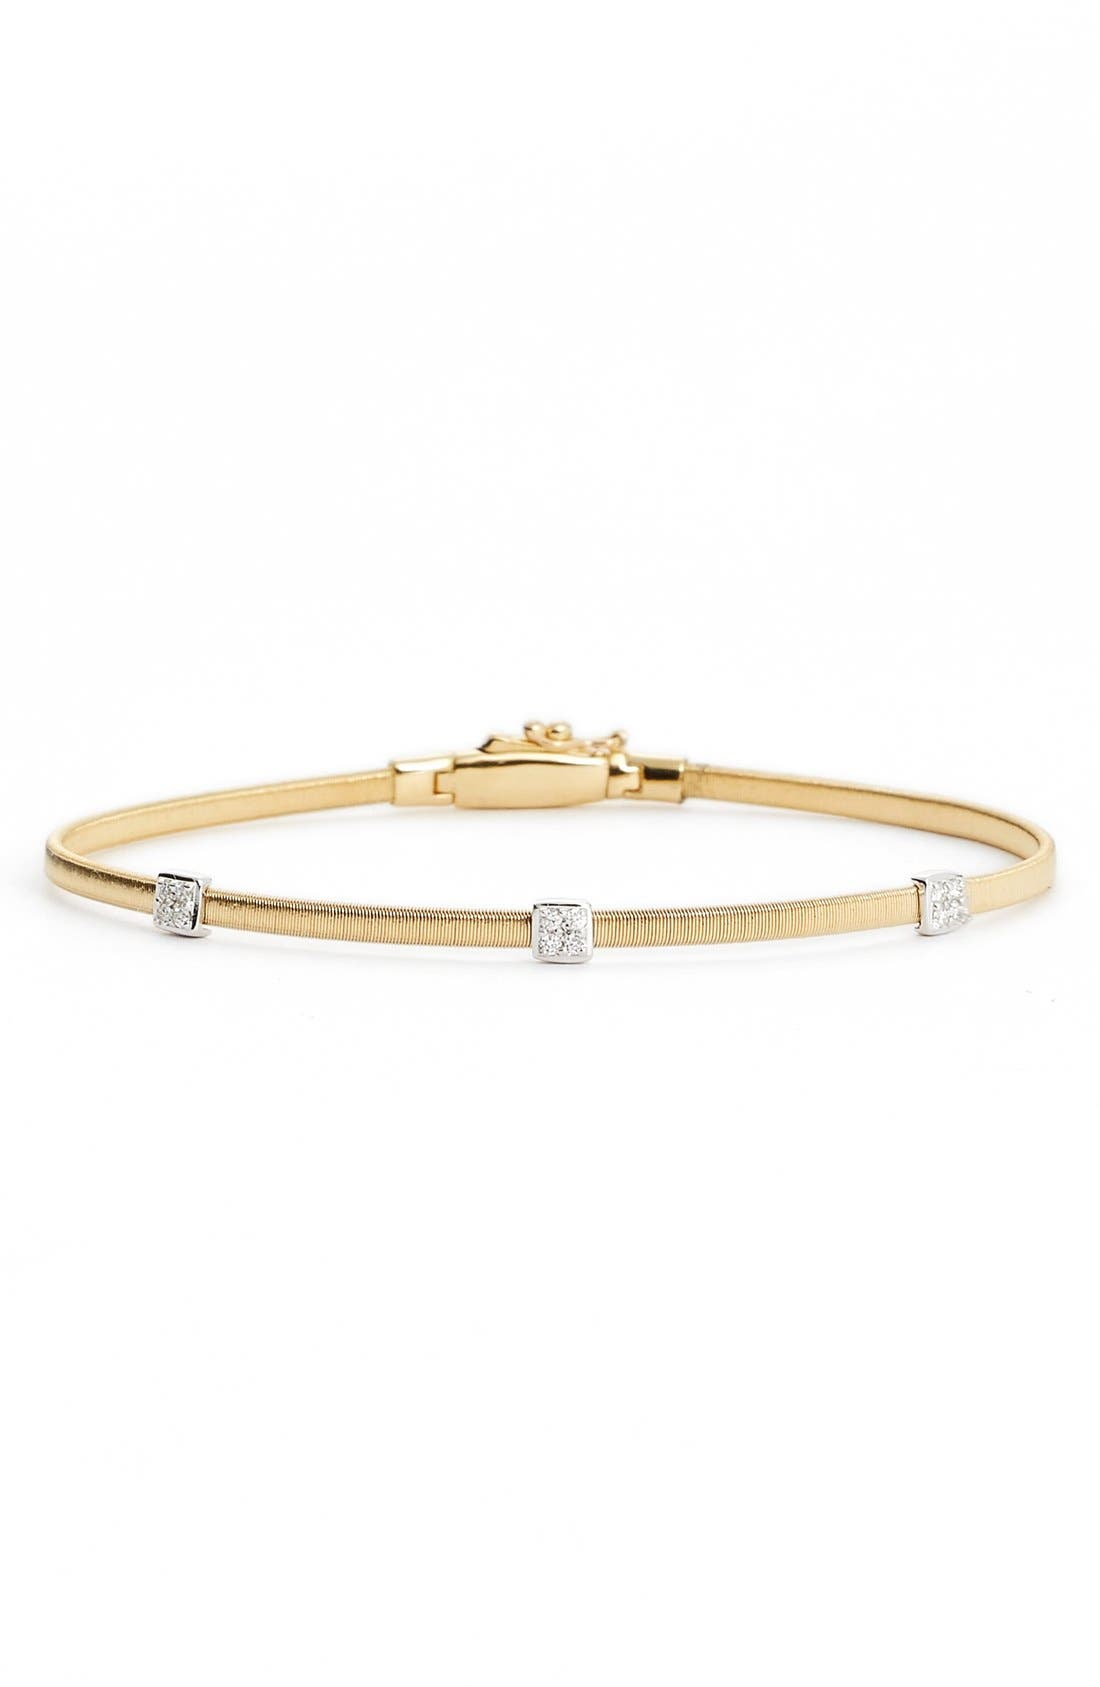 Masai Small Station Diamond Bracelet,                         Main,                         color, YELLOW GOLD